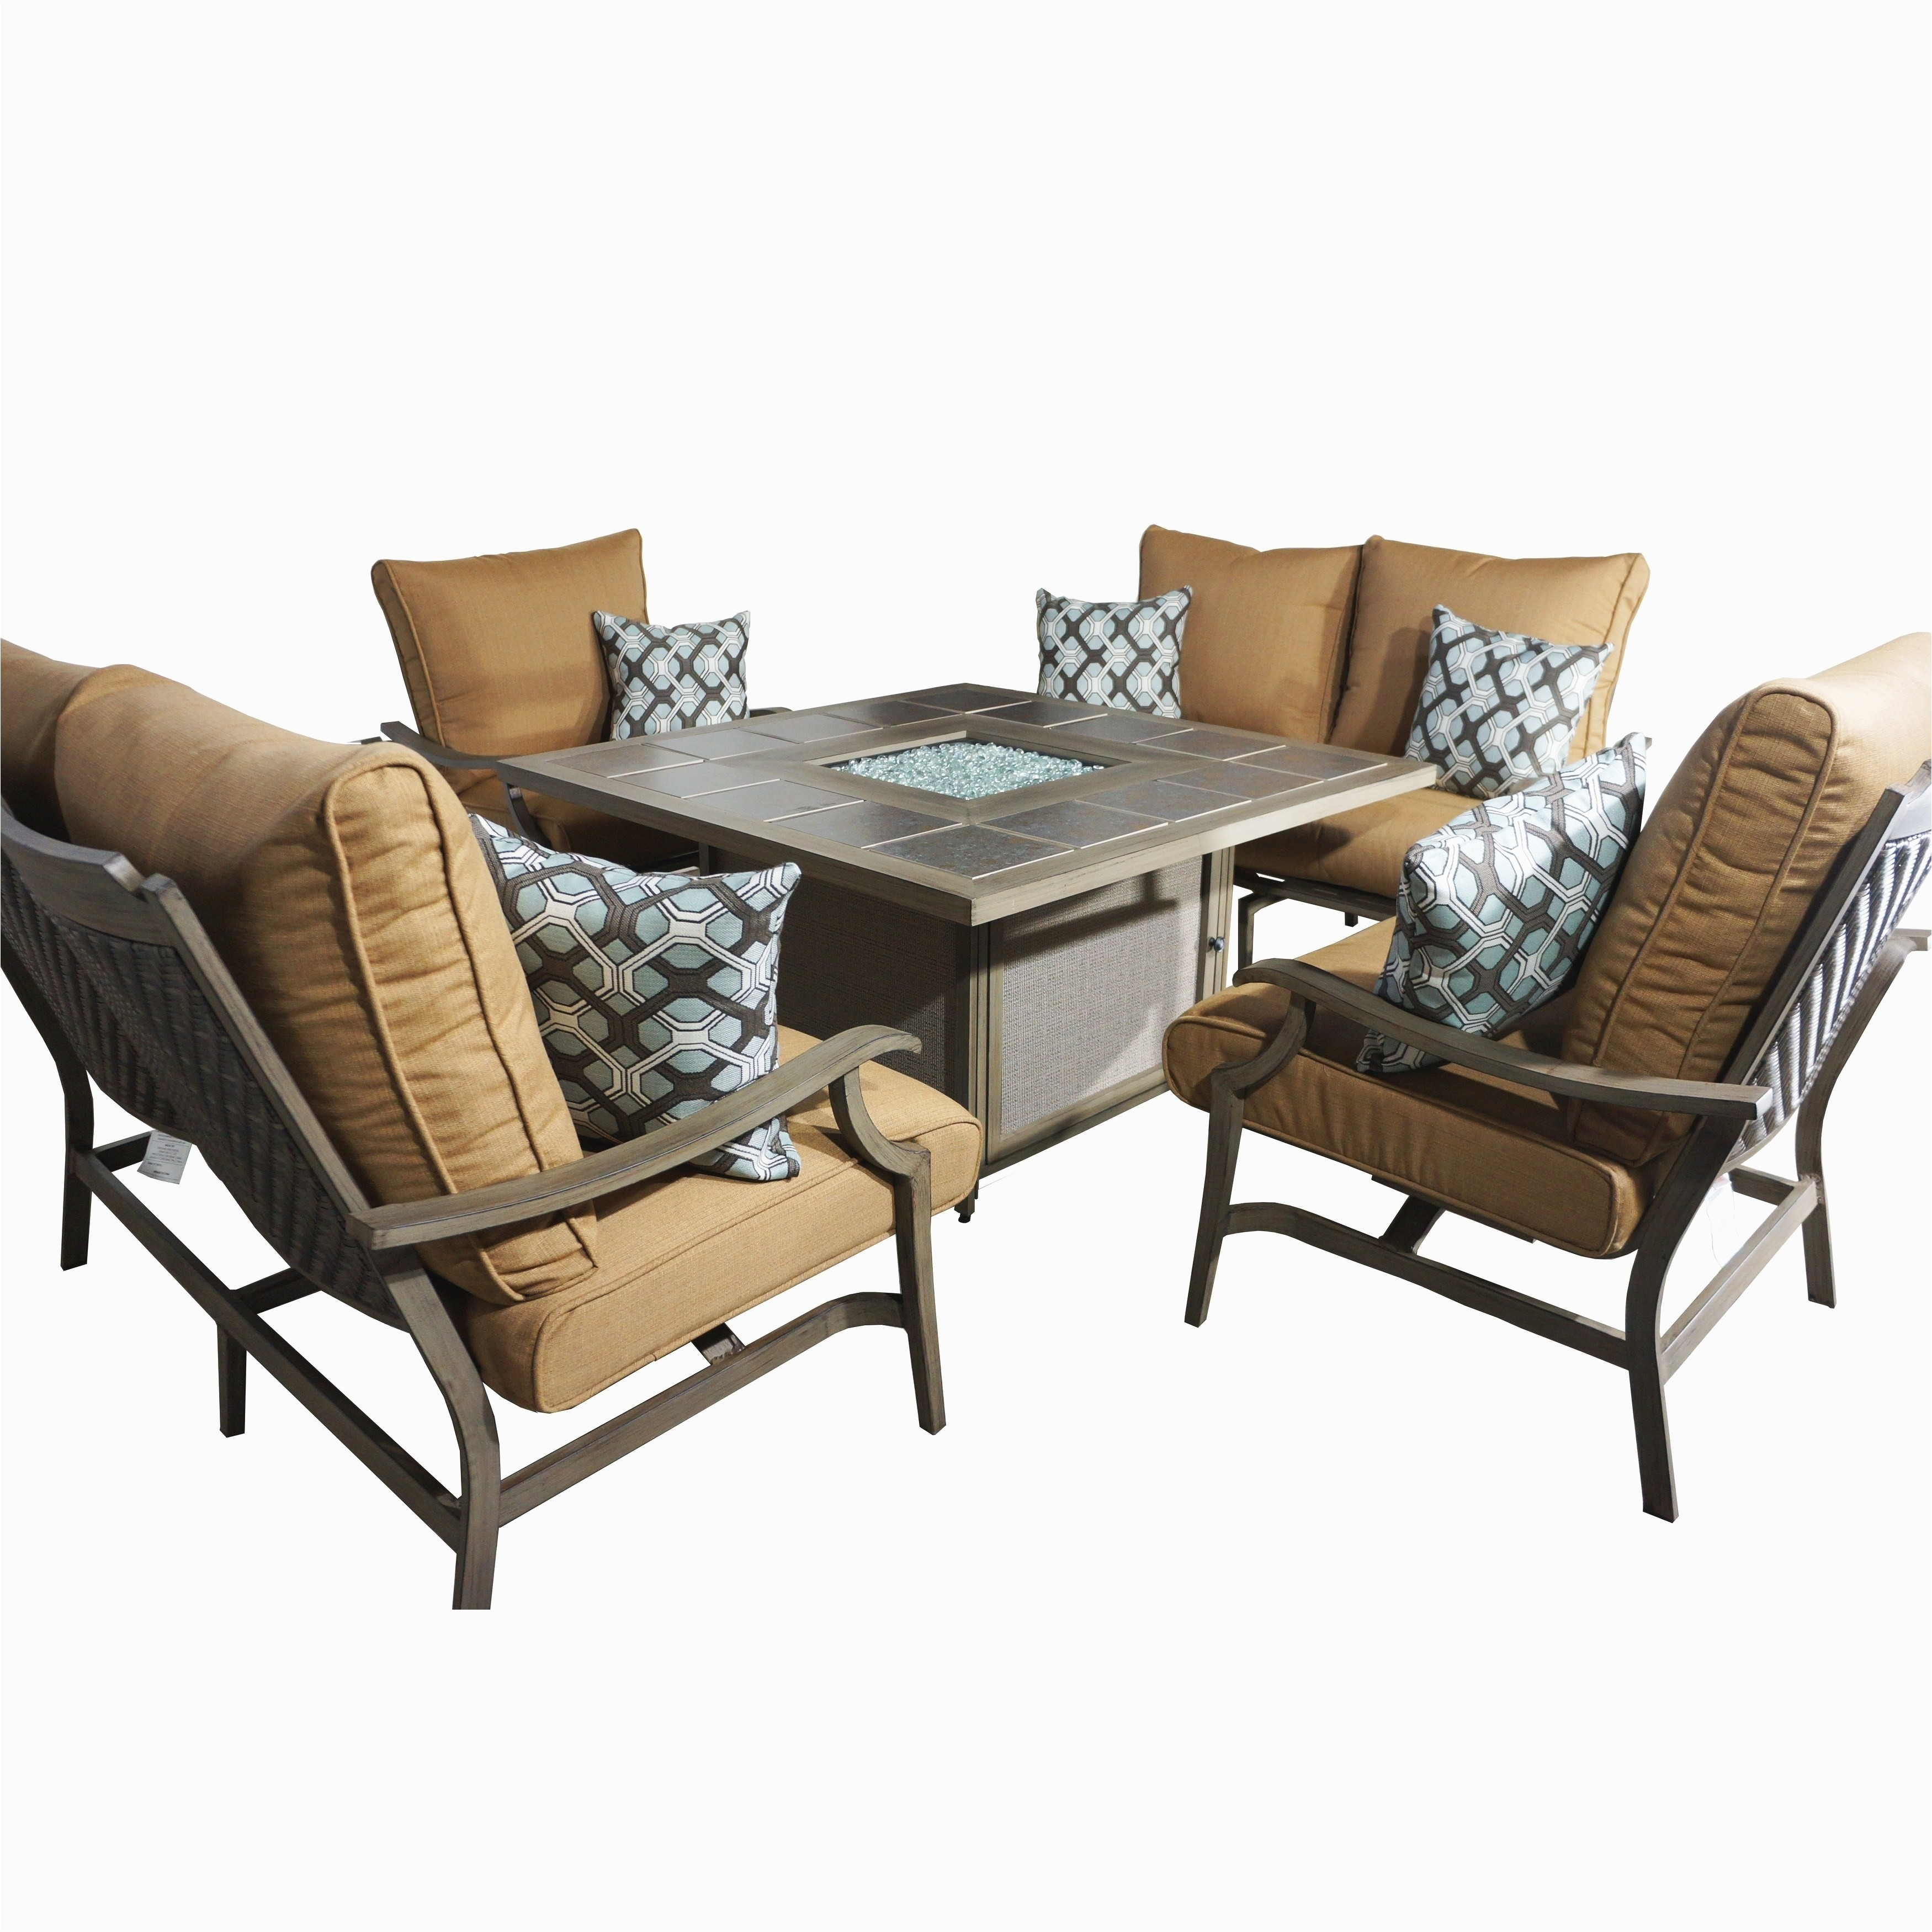 Furniture Stores In Pittsburgh 21 Awesome Of Patio Furniture Pittsburgh Pics Home Furniture Ideas